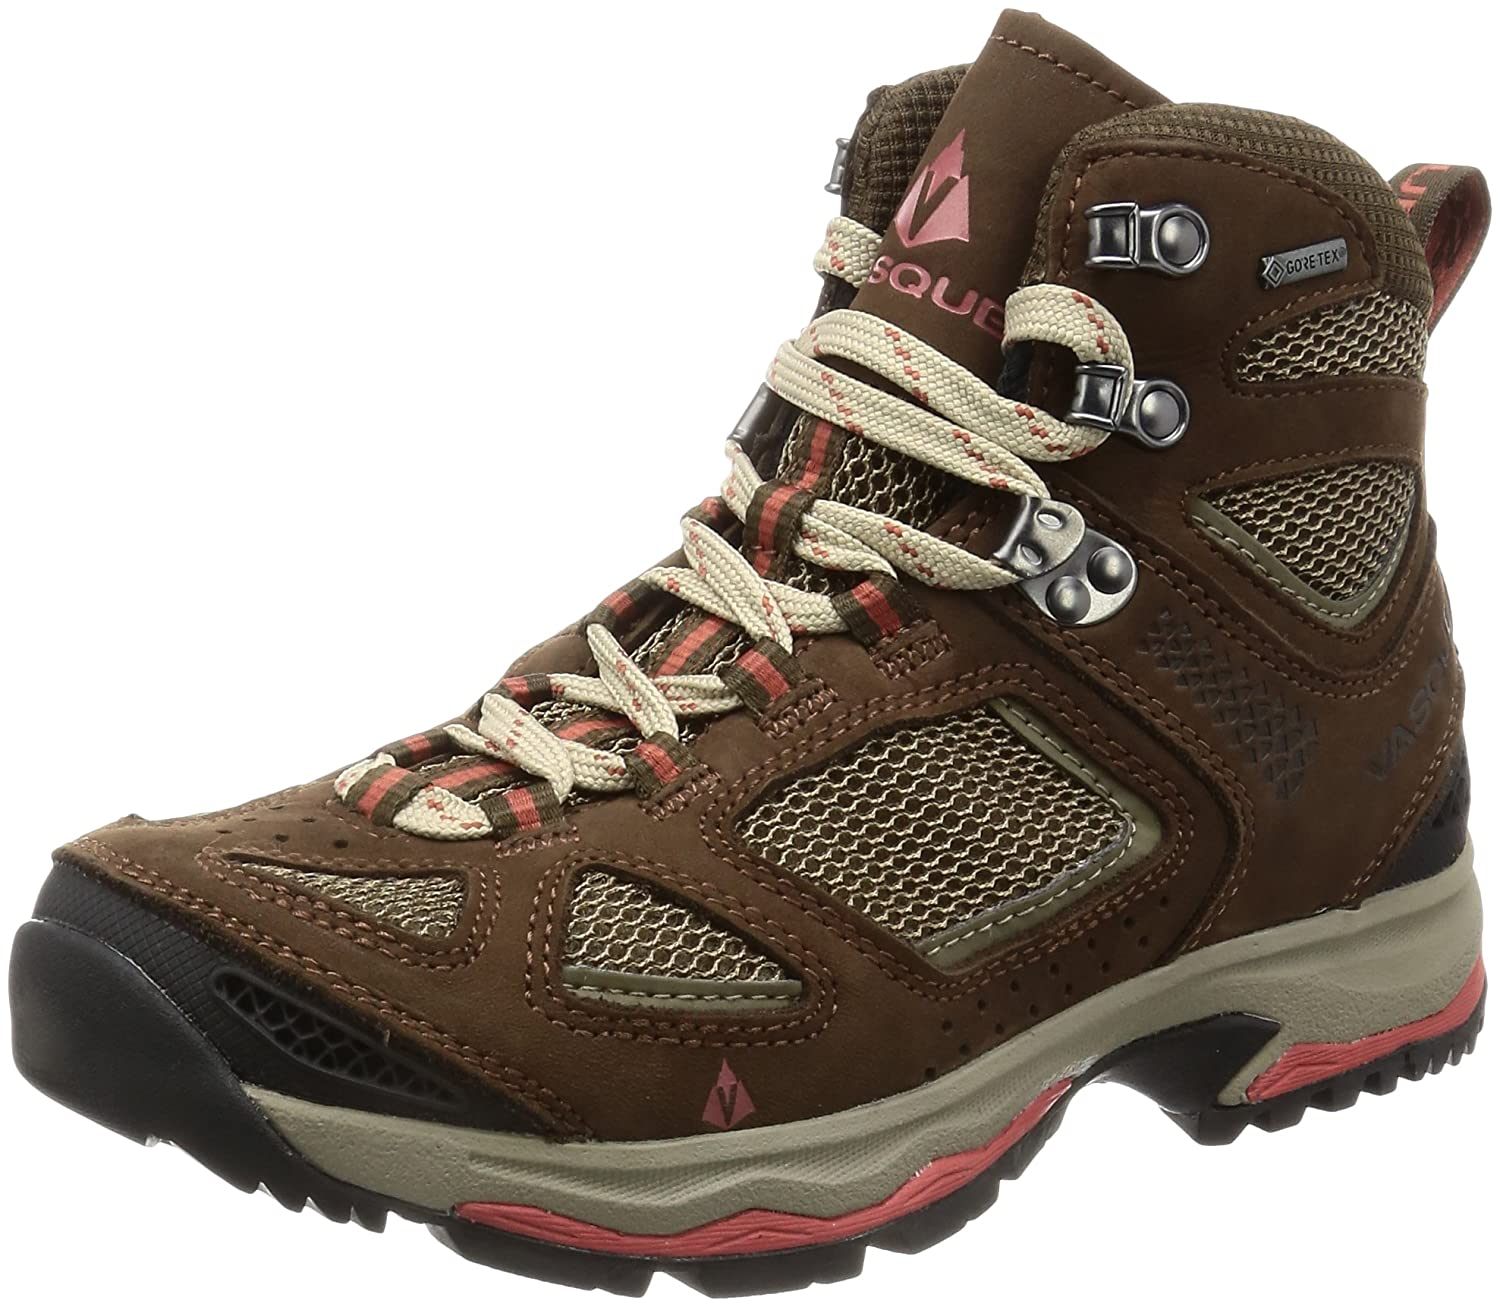 Vasque Women's Breeze III GTX Waterproof Hiking Boot B01F5K0XEM 9 C/D US|Slate Brown / Tandori Spice